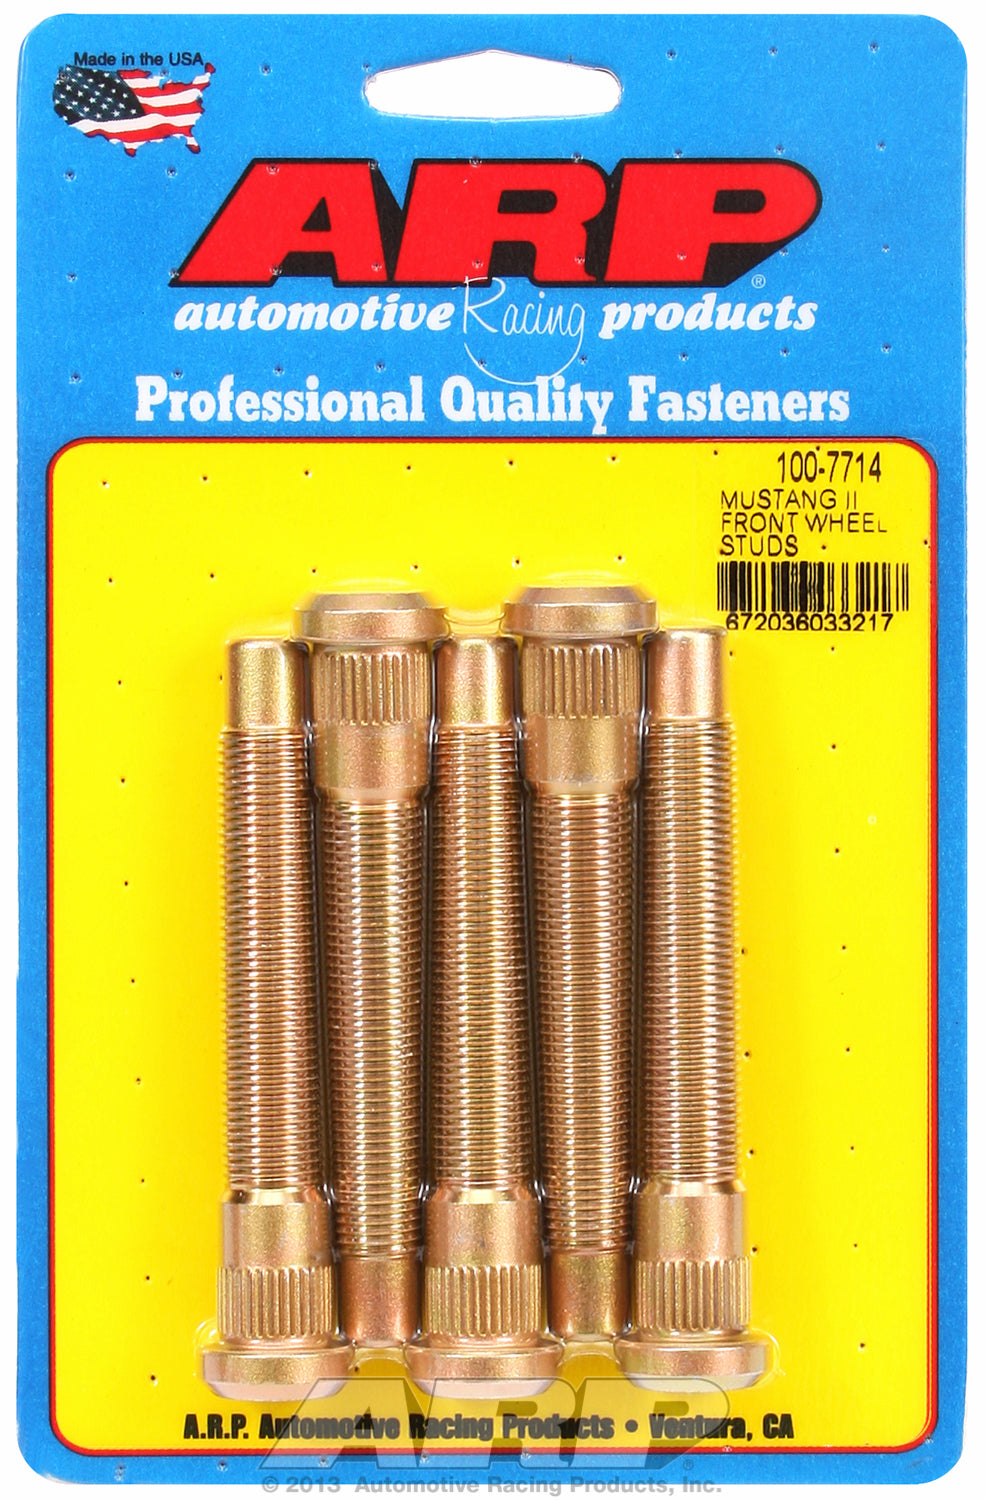 Wheel Stud Kit for Ford Mustang II Front Wheel